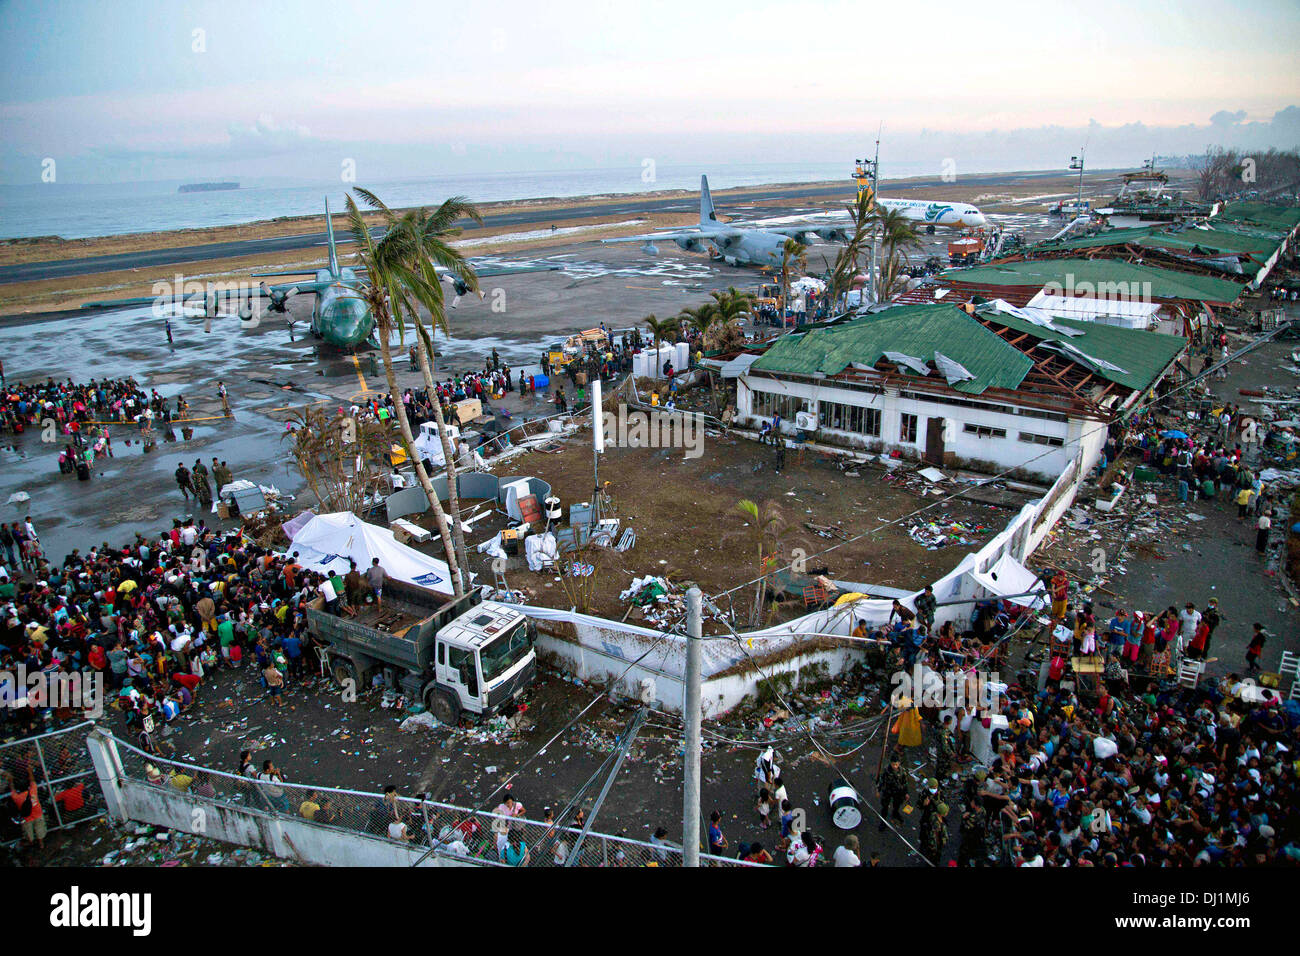 Residents gather at the the destroyed Tacloban Airfield for evacuation to Manila in the aftermath of Super Typhoon Haiyan November 14, 2013 in Tacloban, Philippines. - Stock Image